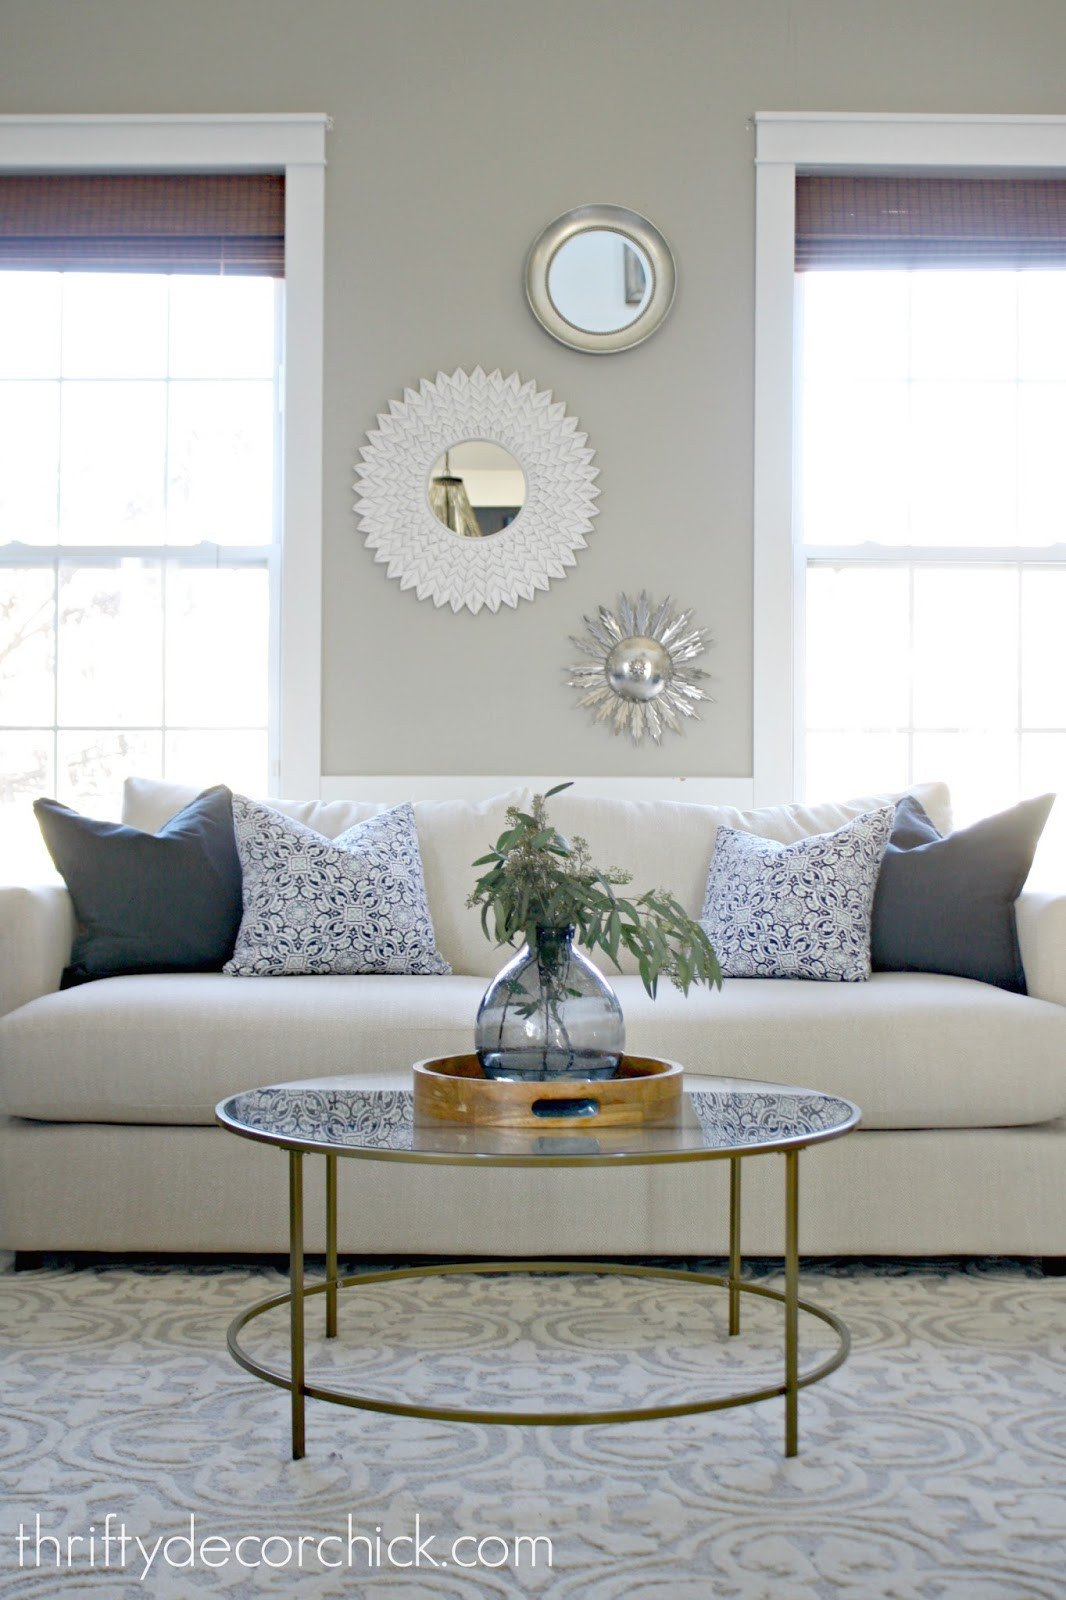 Round Coffee Table Decor Ideas Best Of when In Doubt Add some Circles From Thrifty Decor Chick